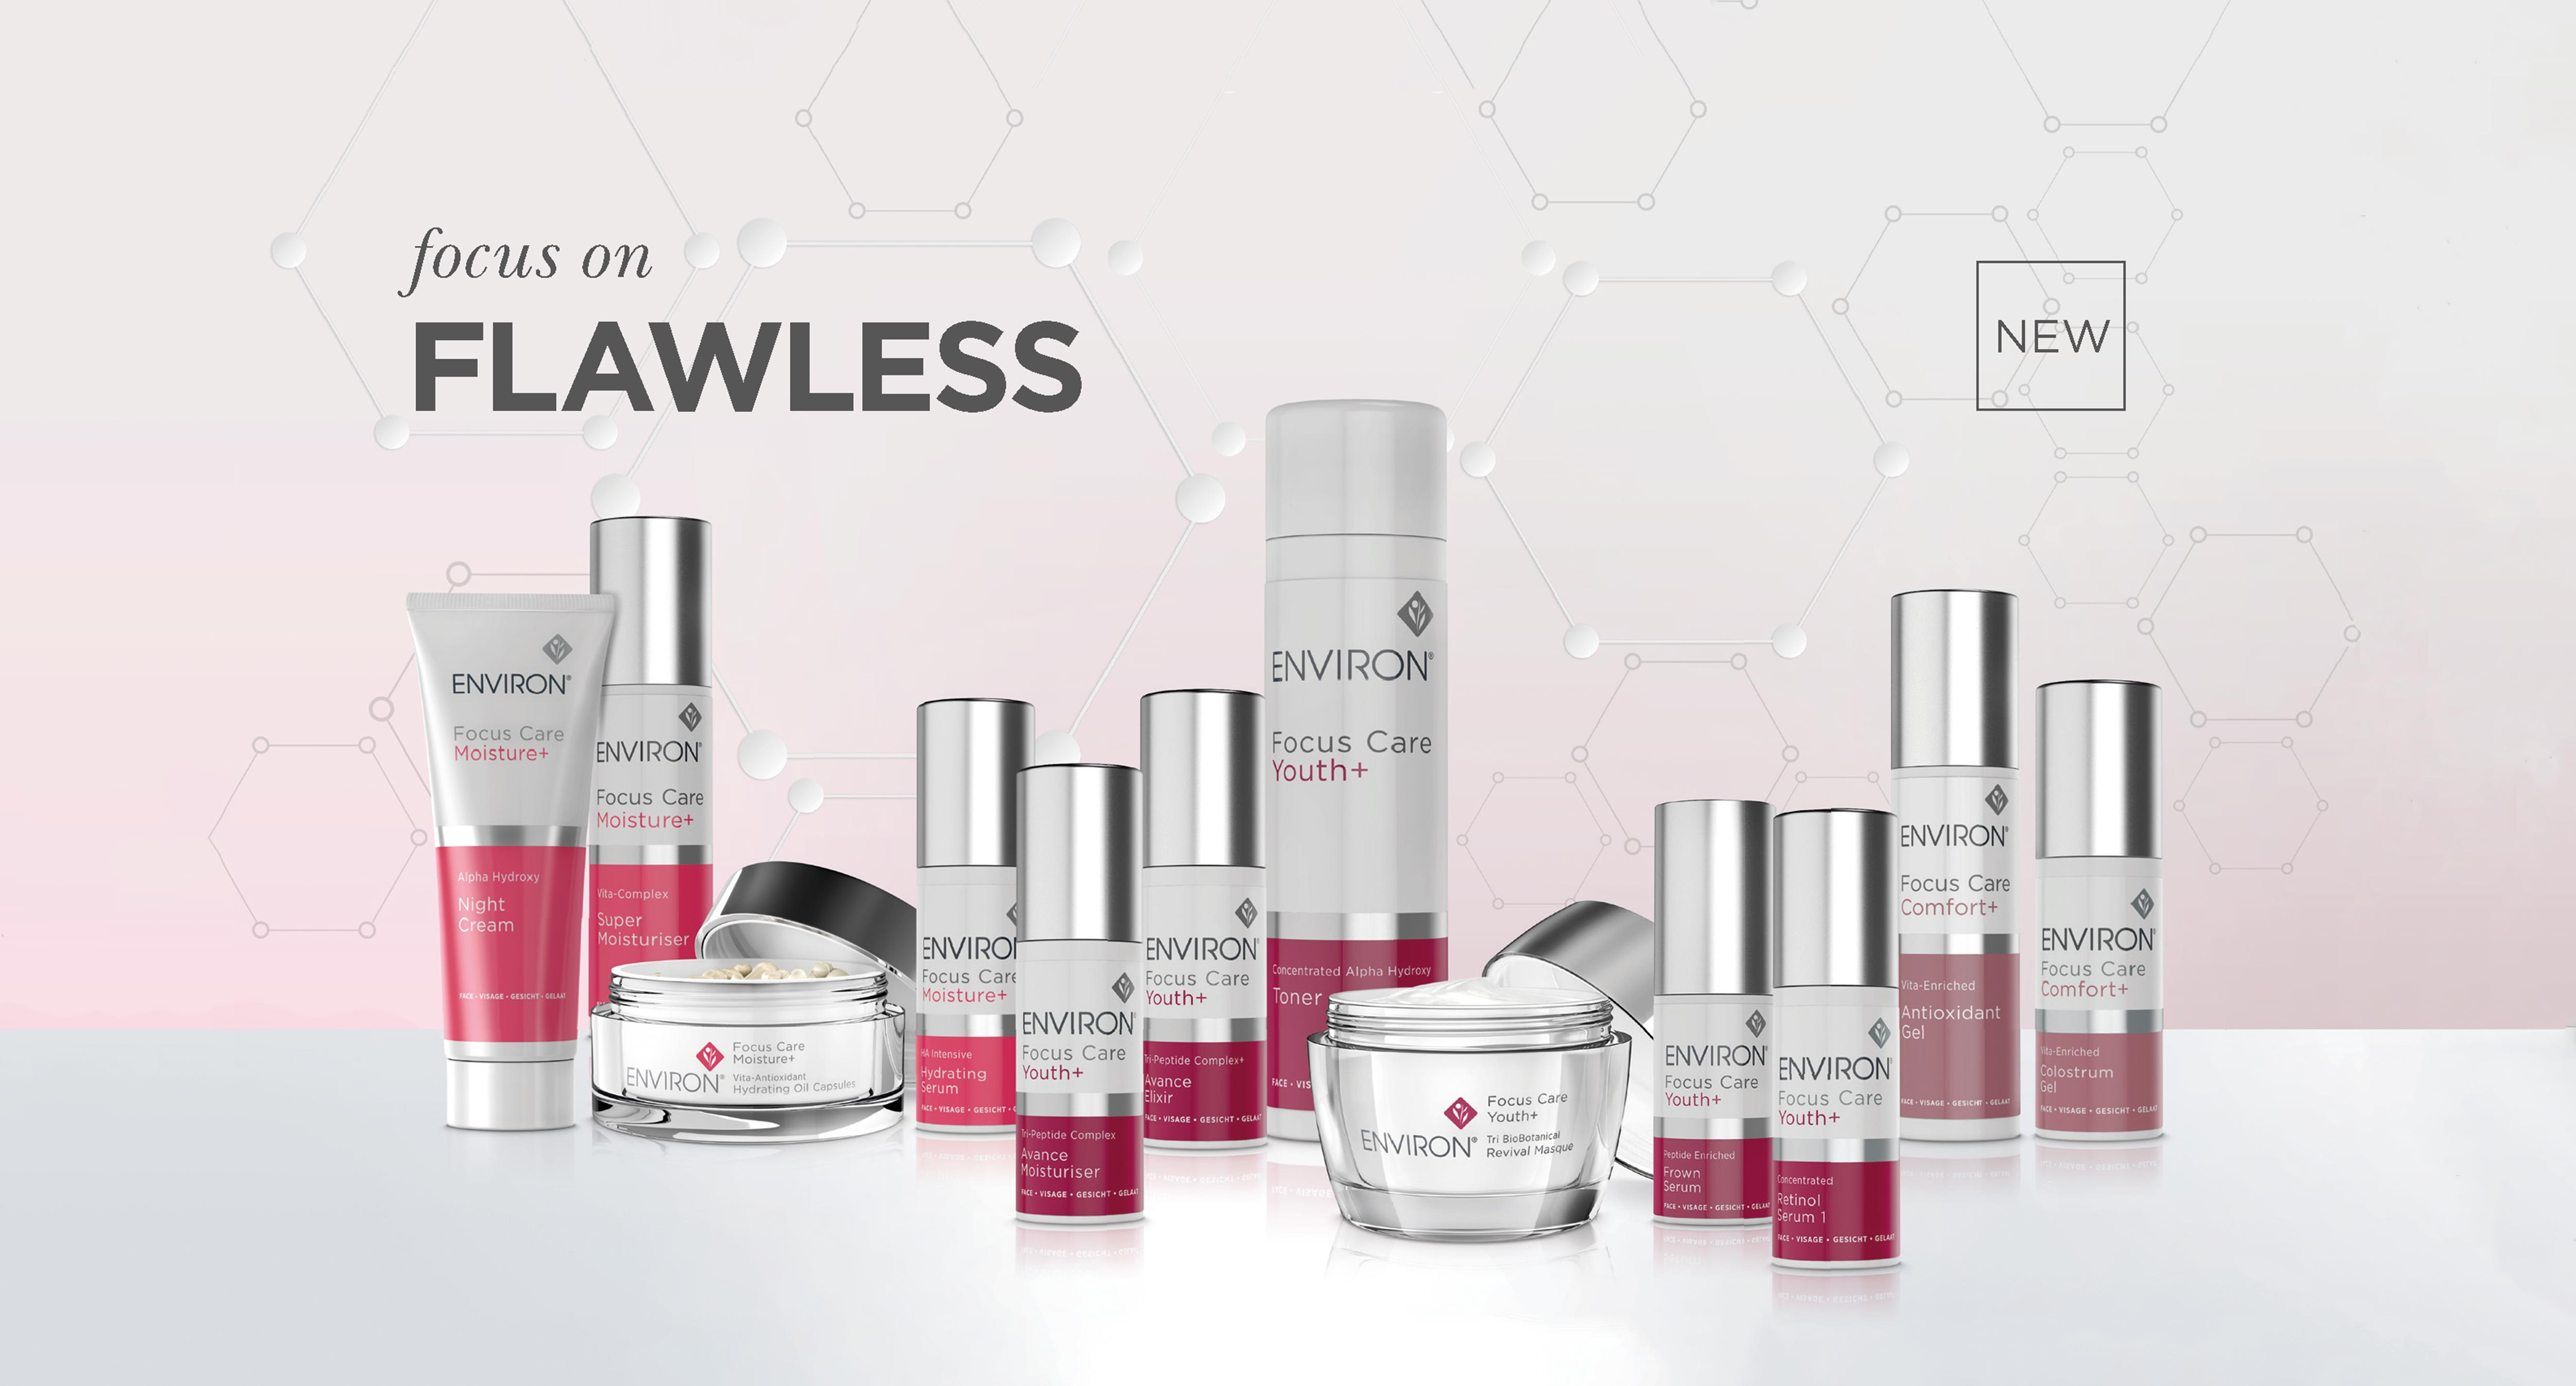 Environ Focus Care range